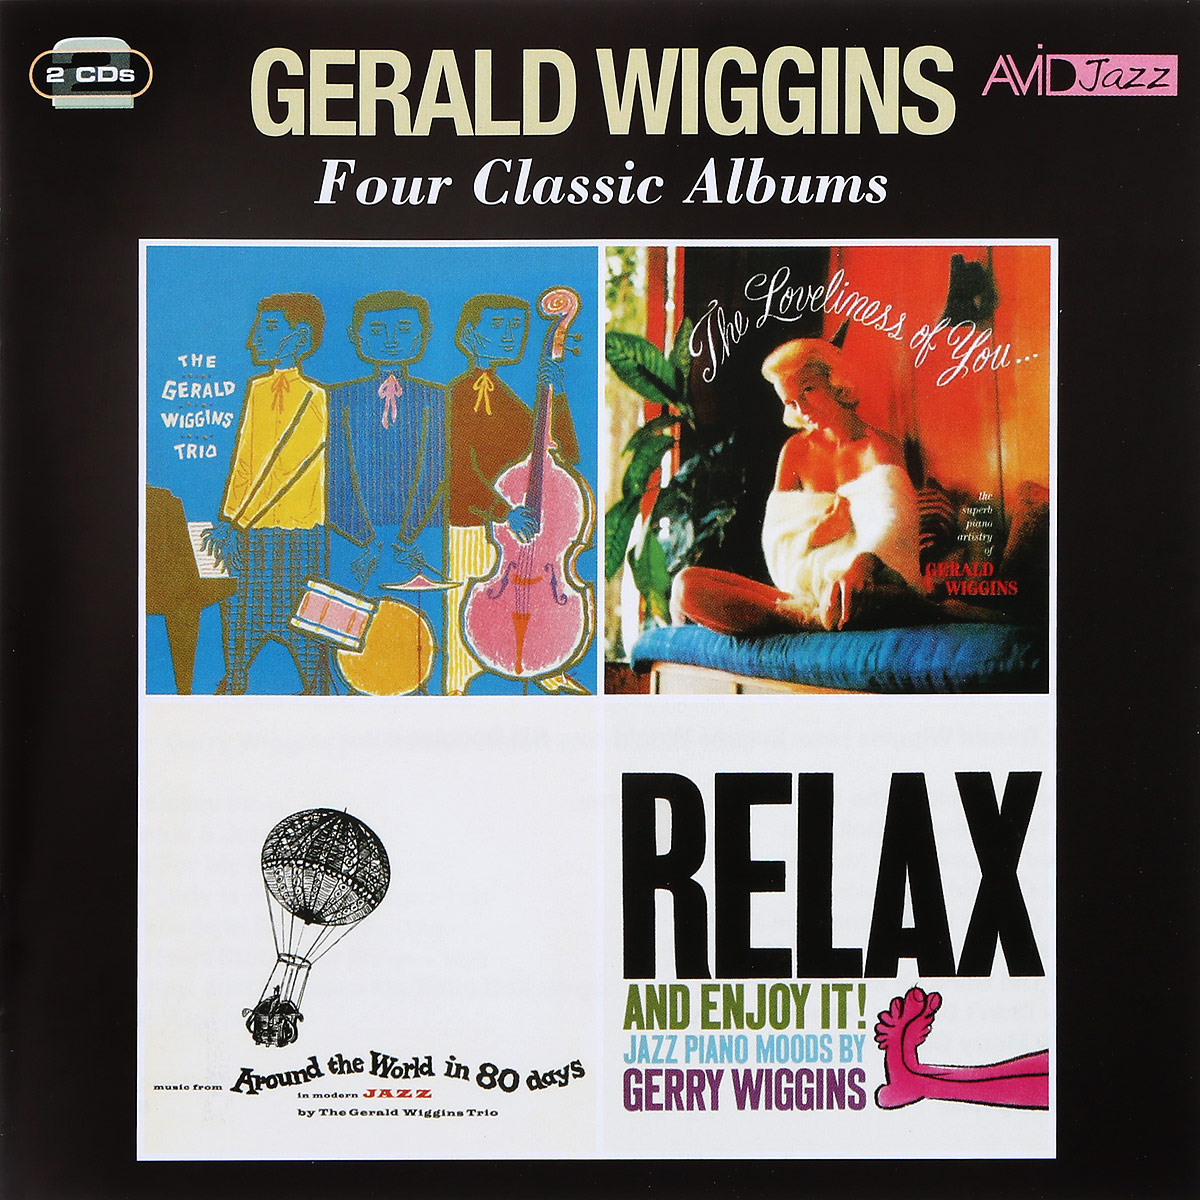 Геральд Виггинс,The Gerald Wiggins Trio  Avid Jazz. Gerald Wiggins. Four Classic Albums (2 CD) avid digidesign